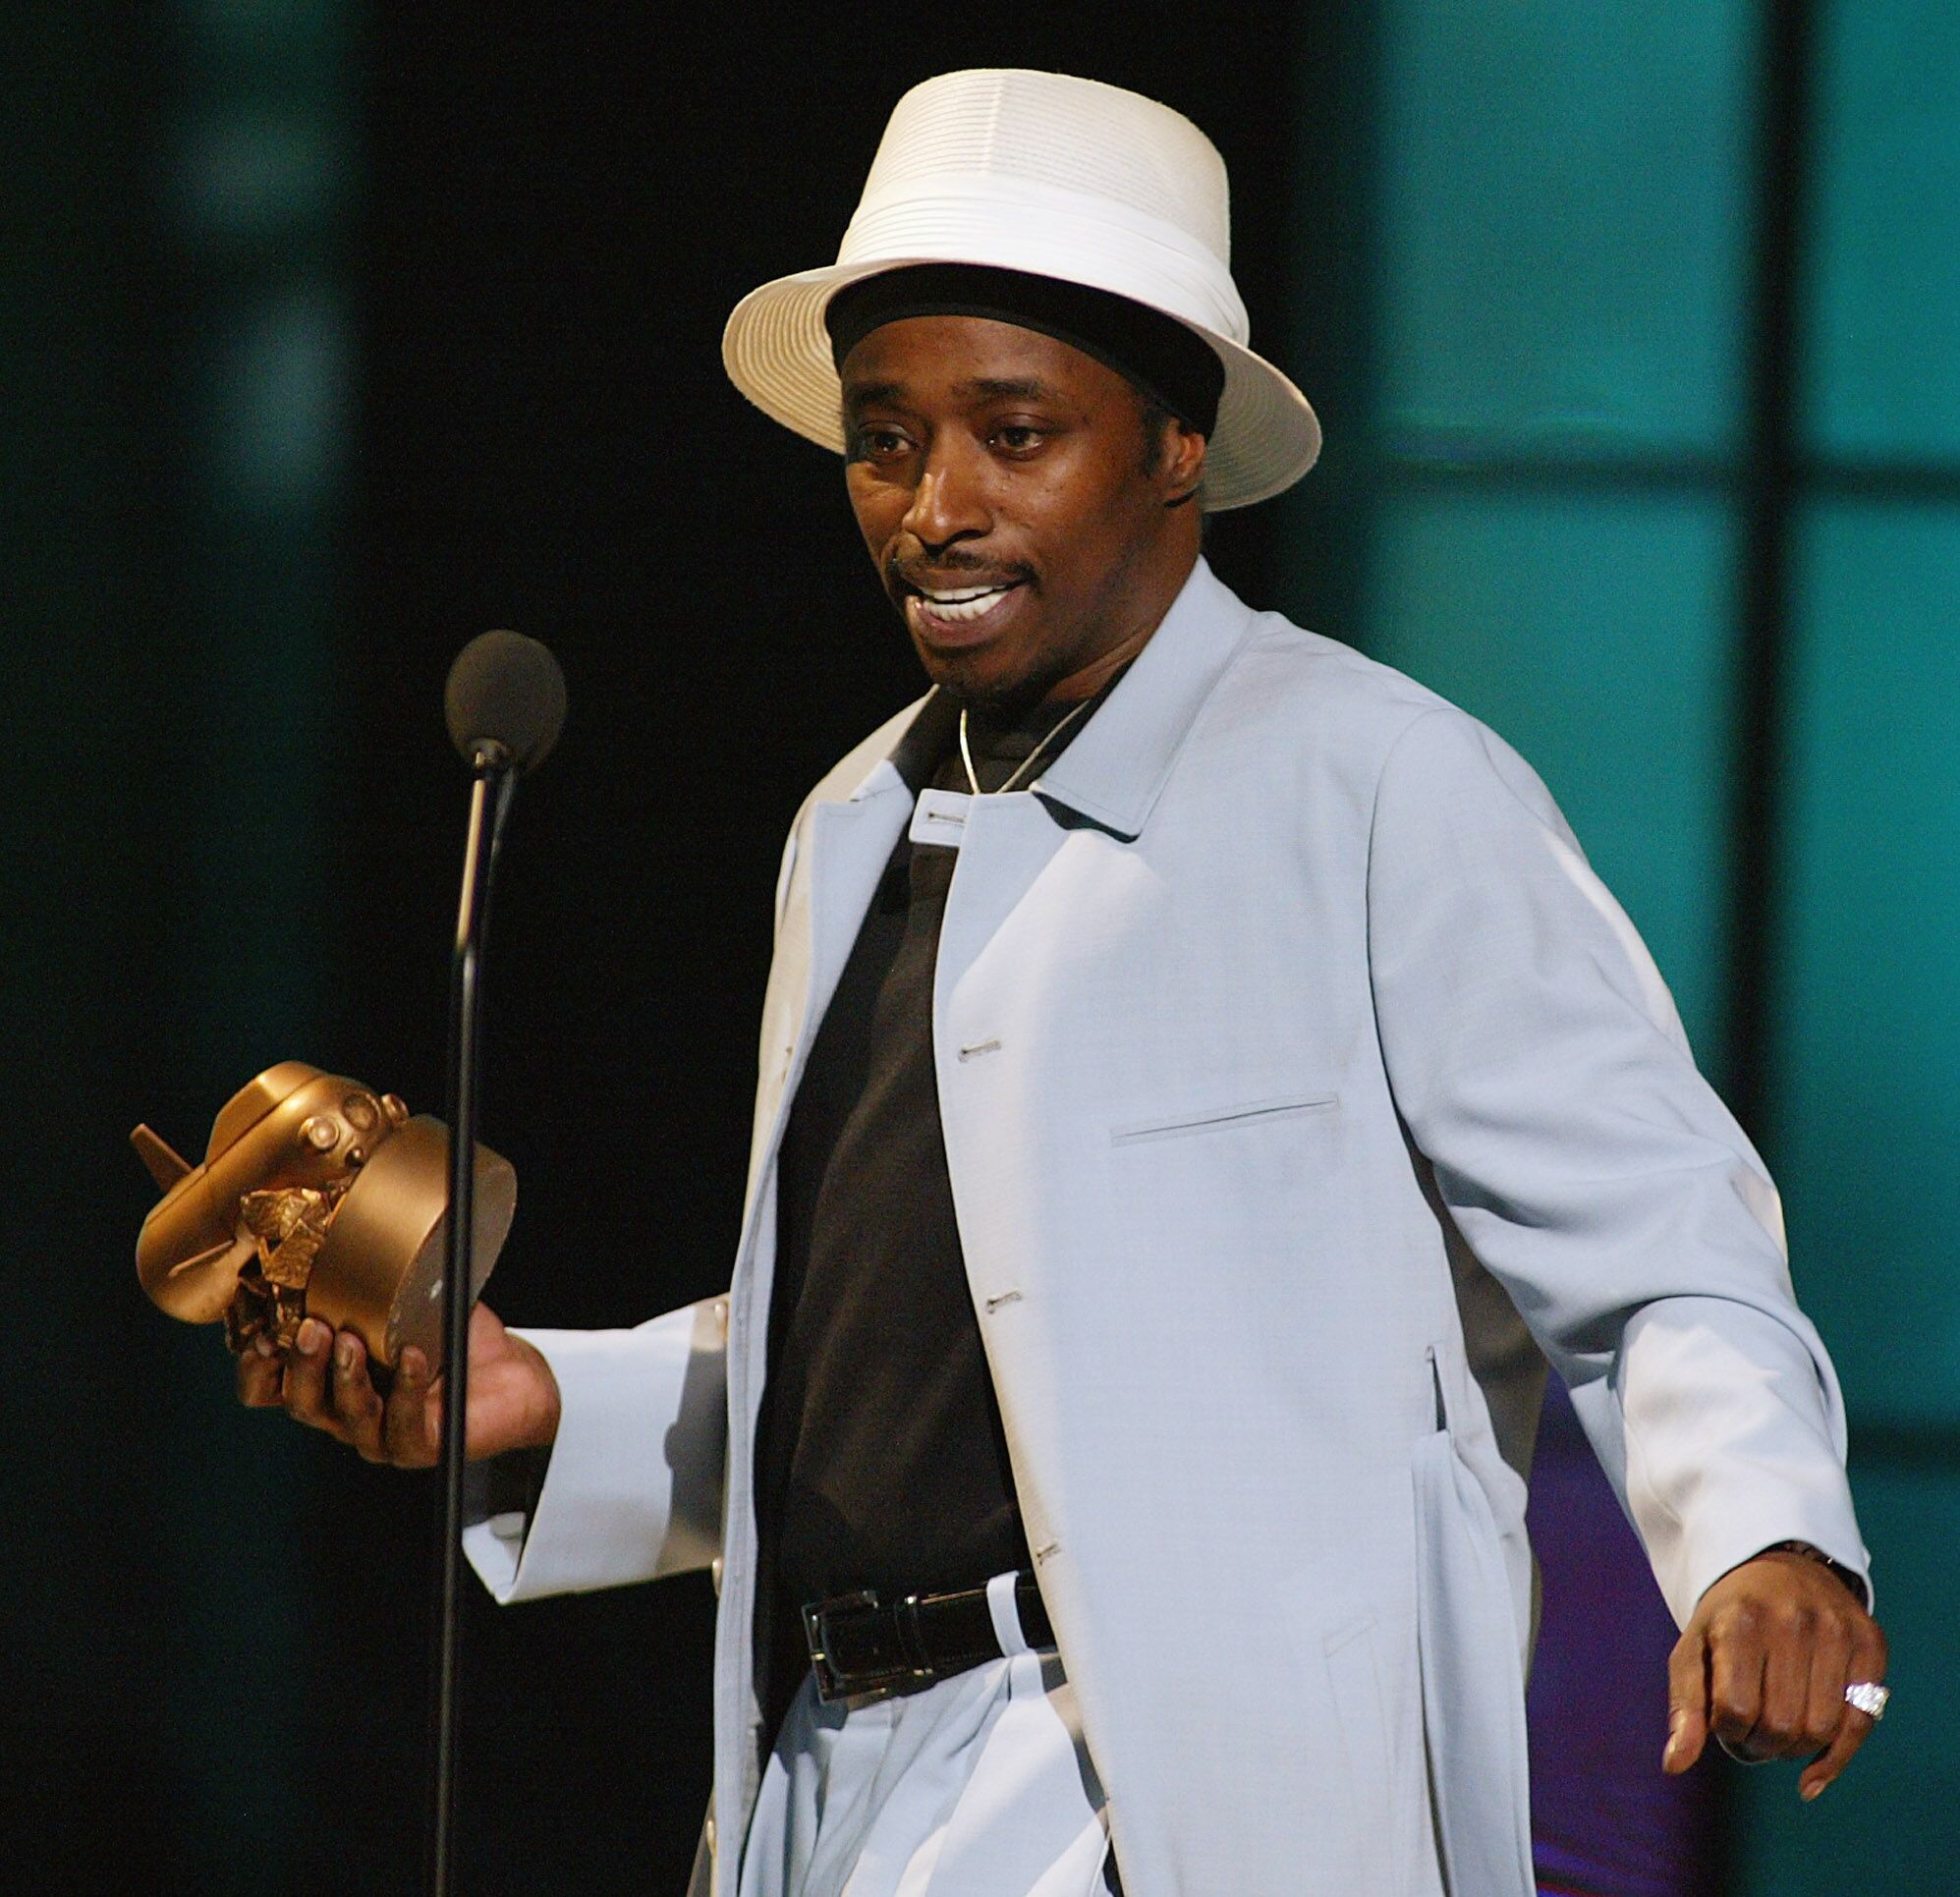 Eddie Griffin at the VH1 Big In 2002 Awards   Getty Images